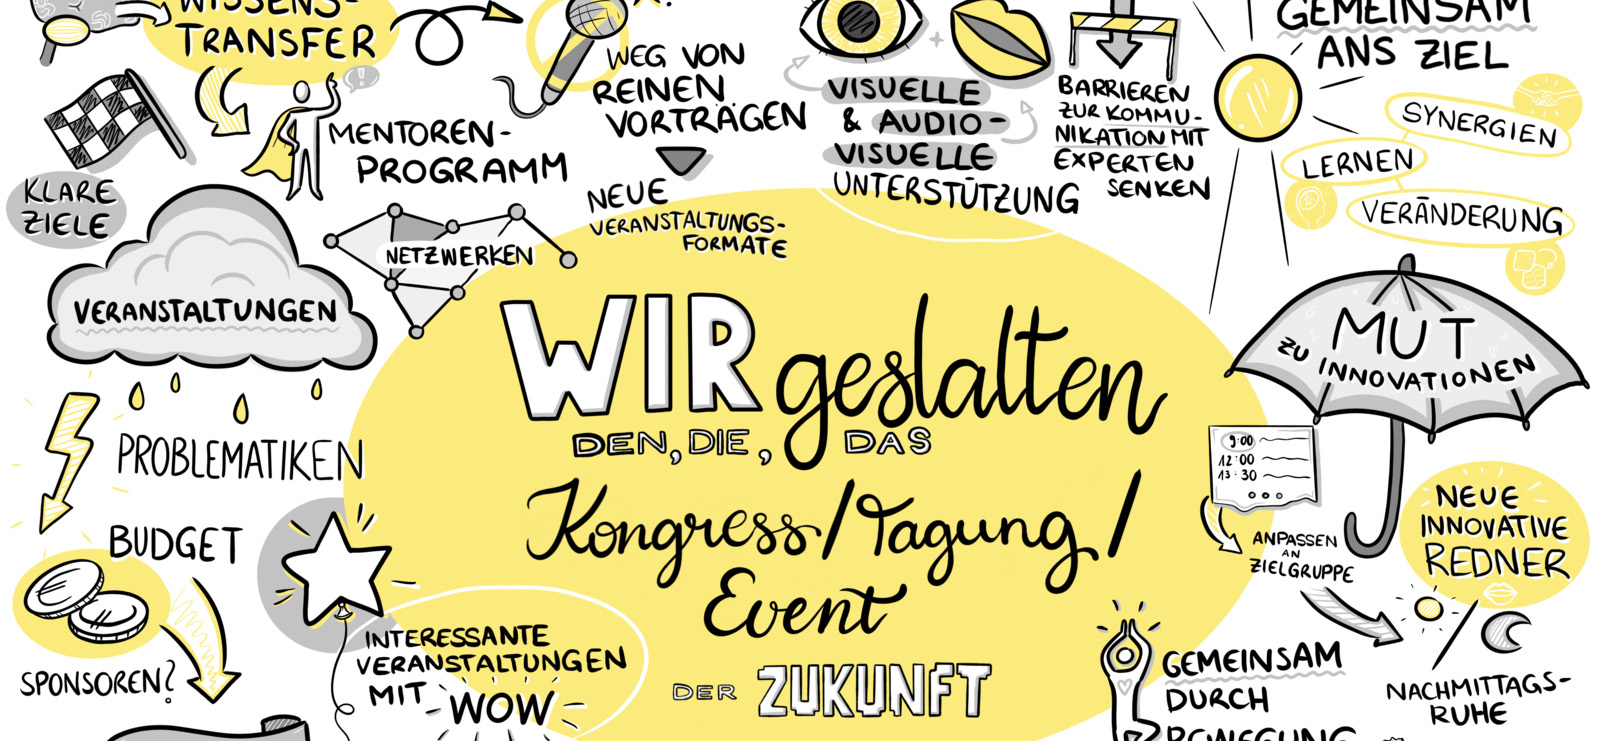 """Mut zur Innovation wagen"" Image 1"